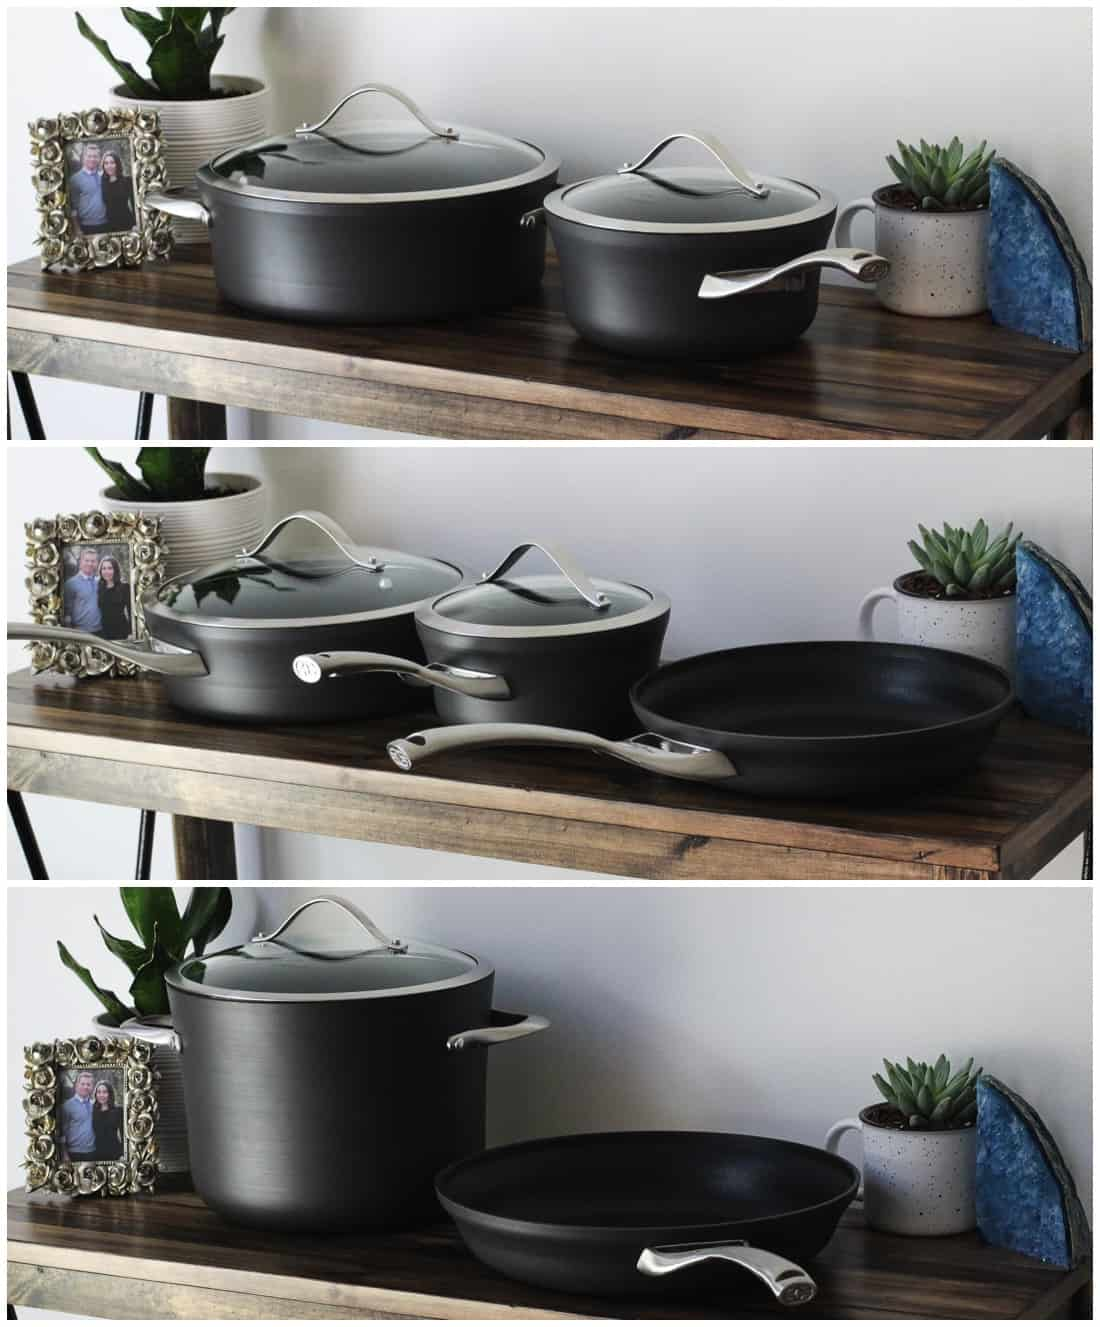 A three-image collage of various Calphalon pots and pans on a wooden desk